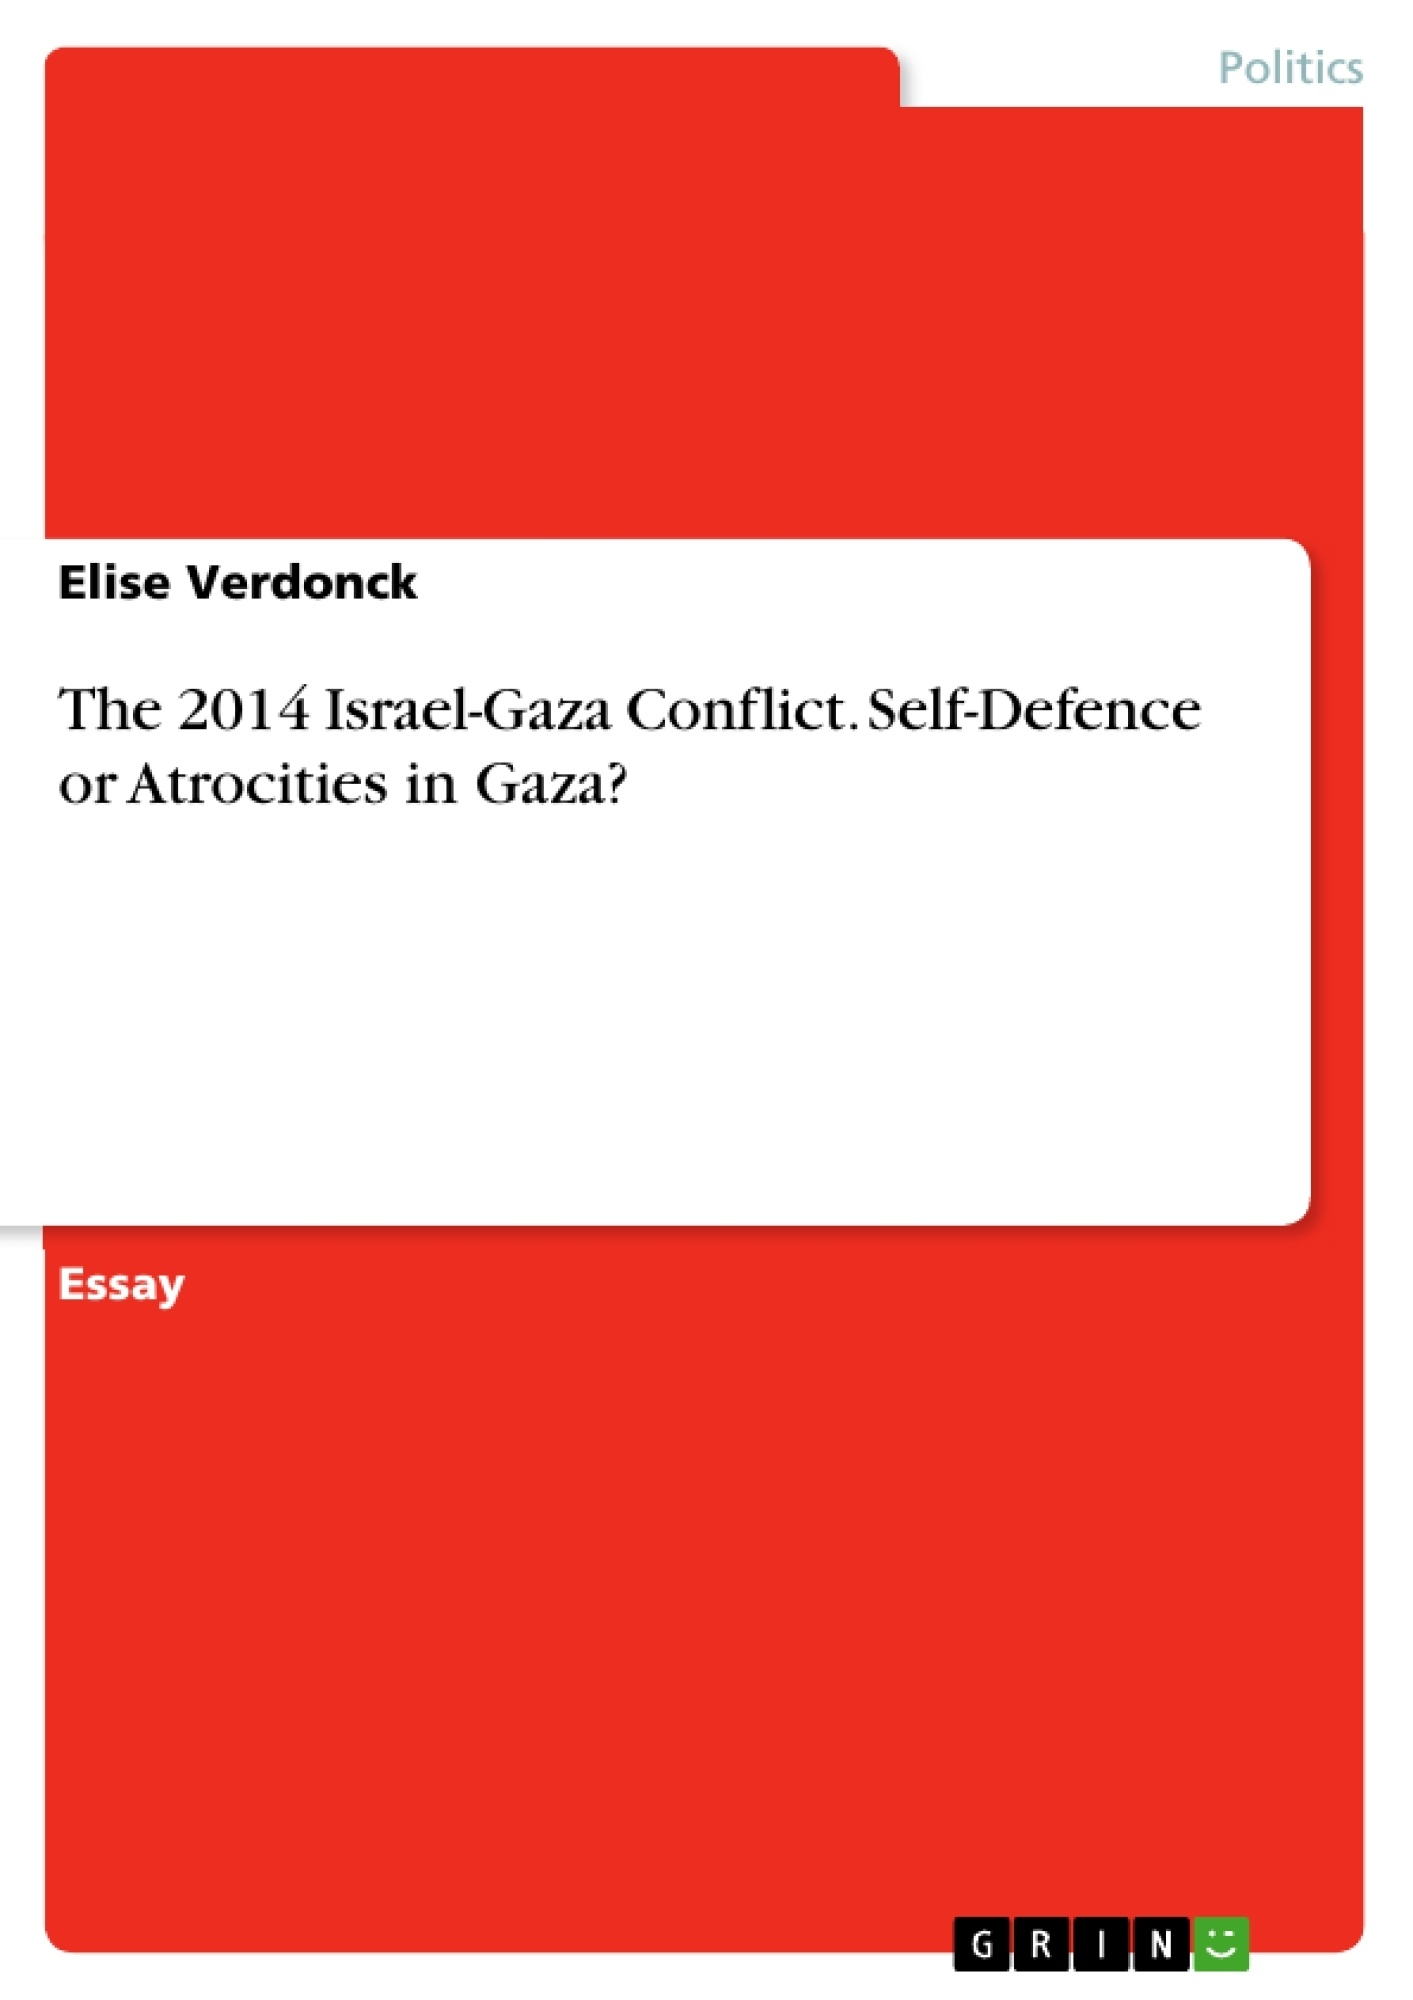 Title: The 2014 Israel-Gaza Conflict. Self-Defence or Atrocities in Gaza?